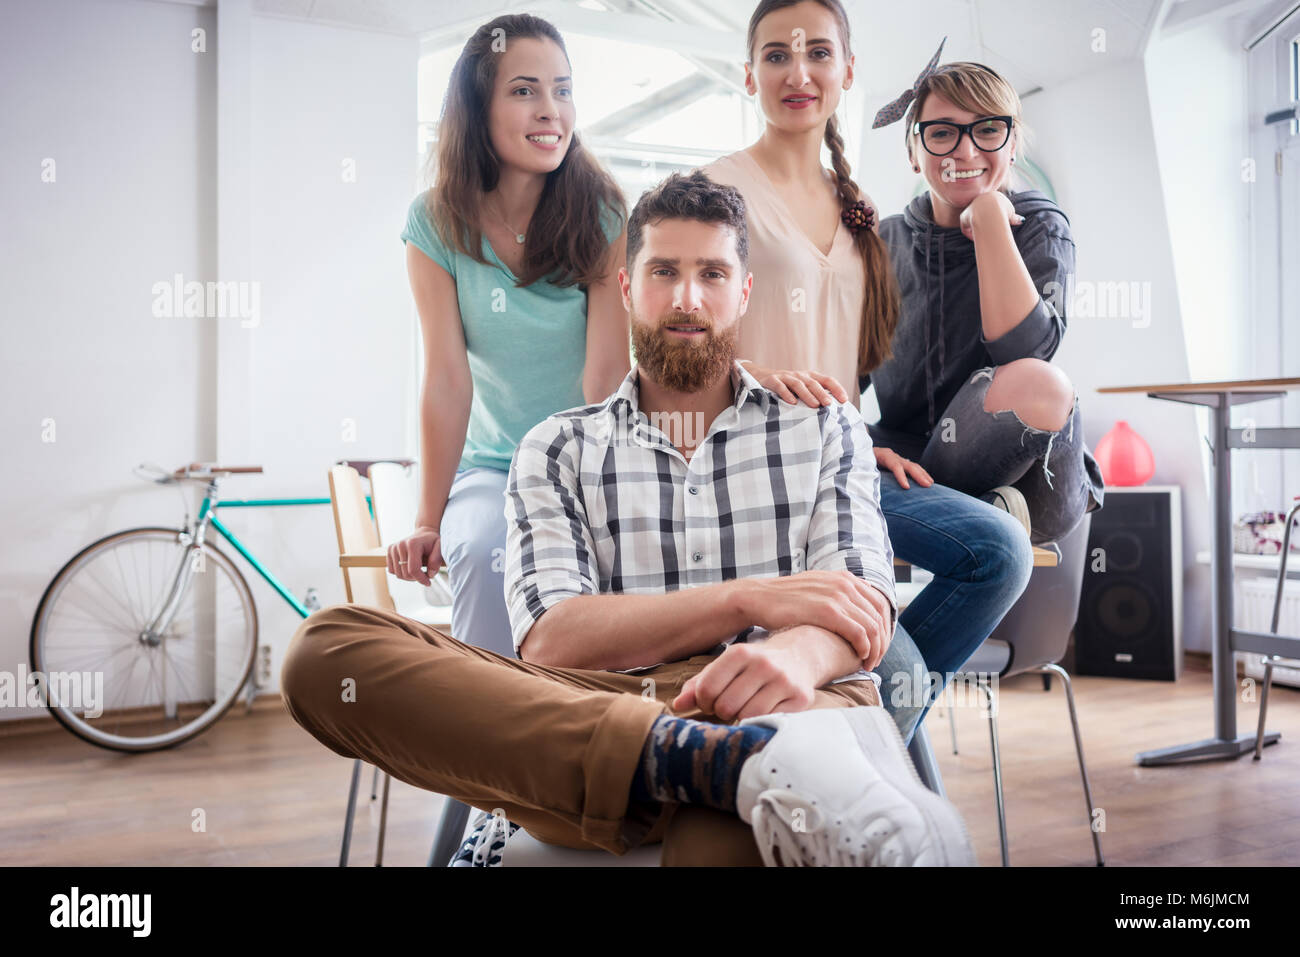 four co-workers wearing casual clothes during work in a modern hub - Stock Image